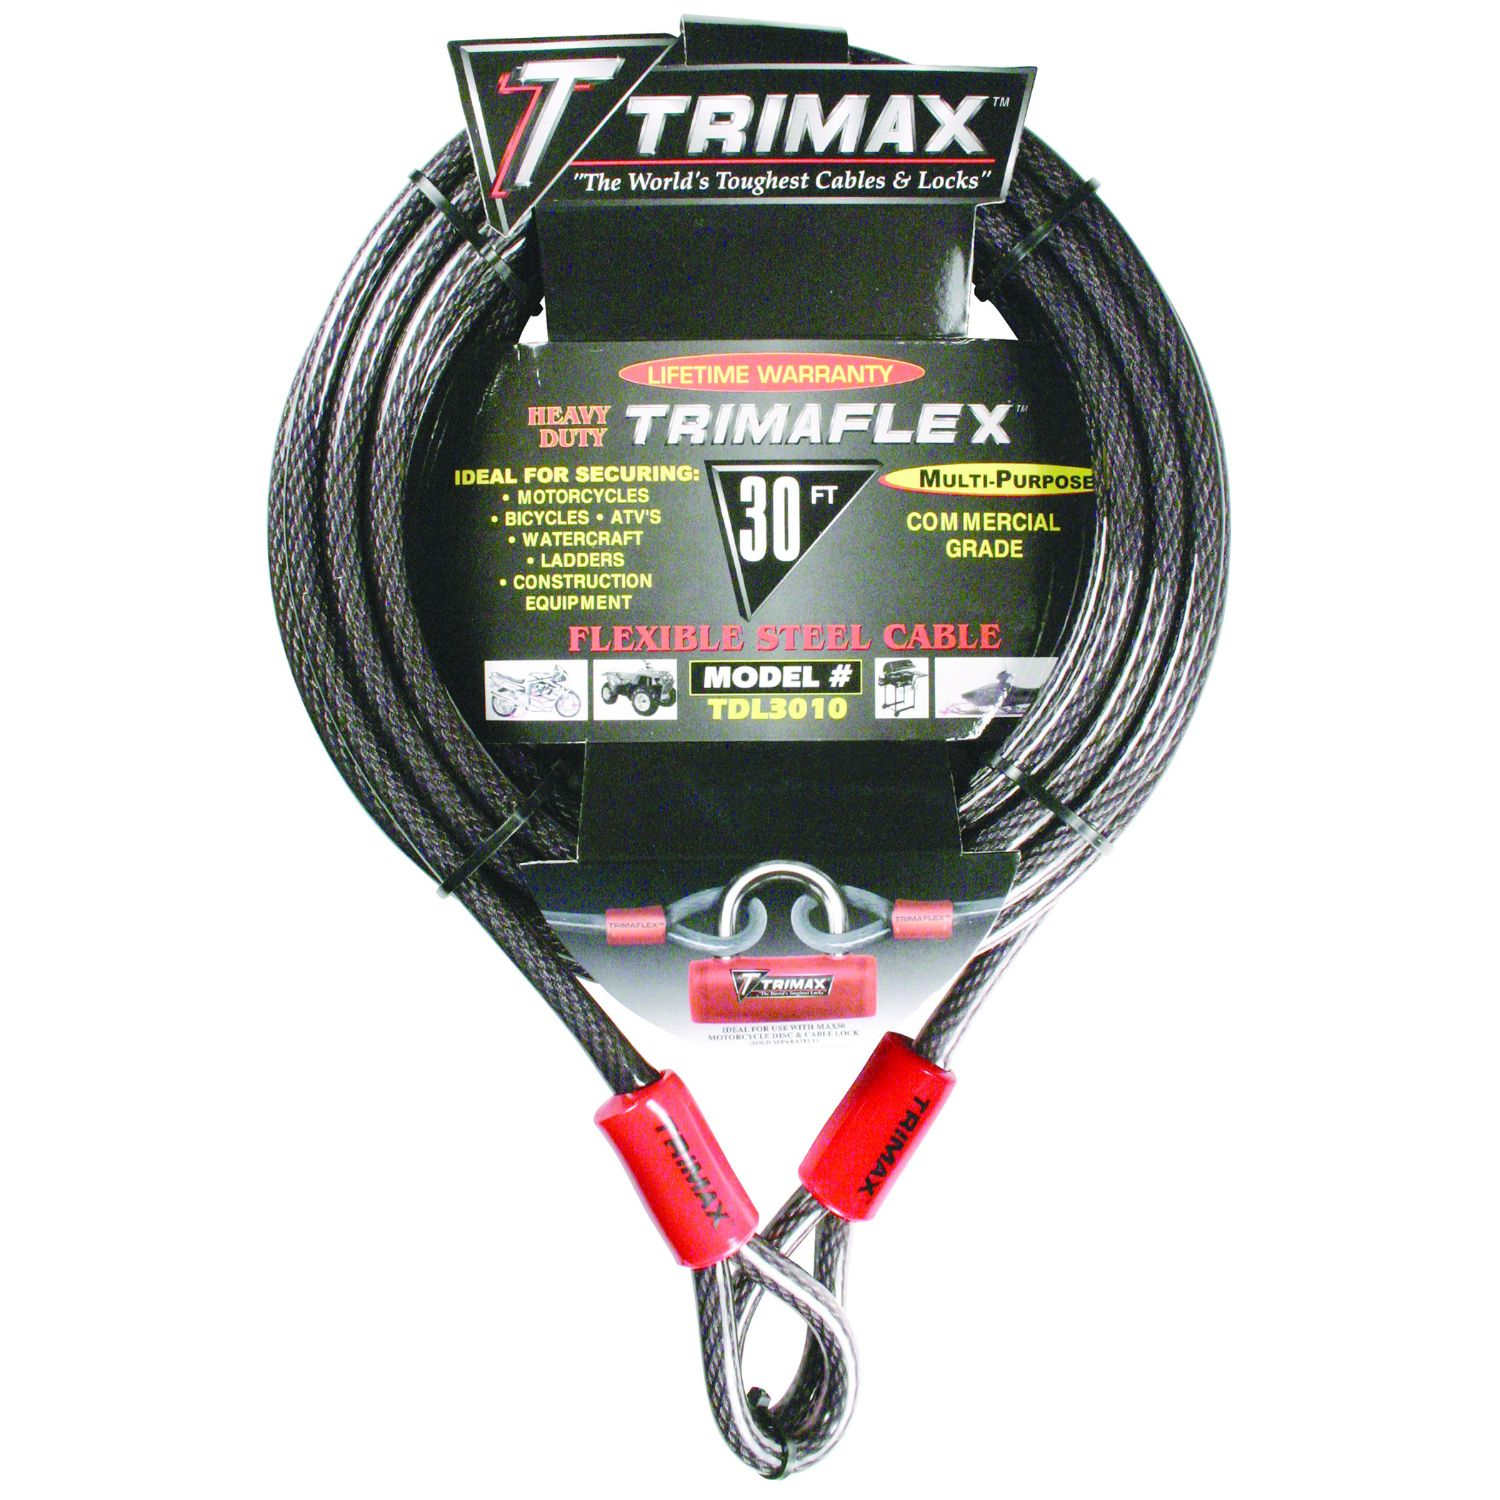 Trimax Trimaflex Dual Loop Multi-Use Cable 30 ft x 10 mm